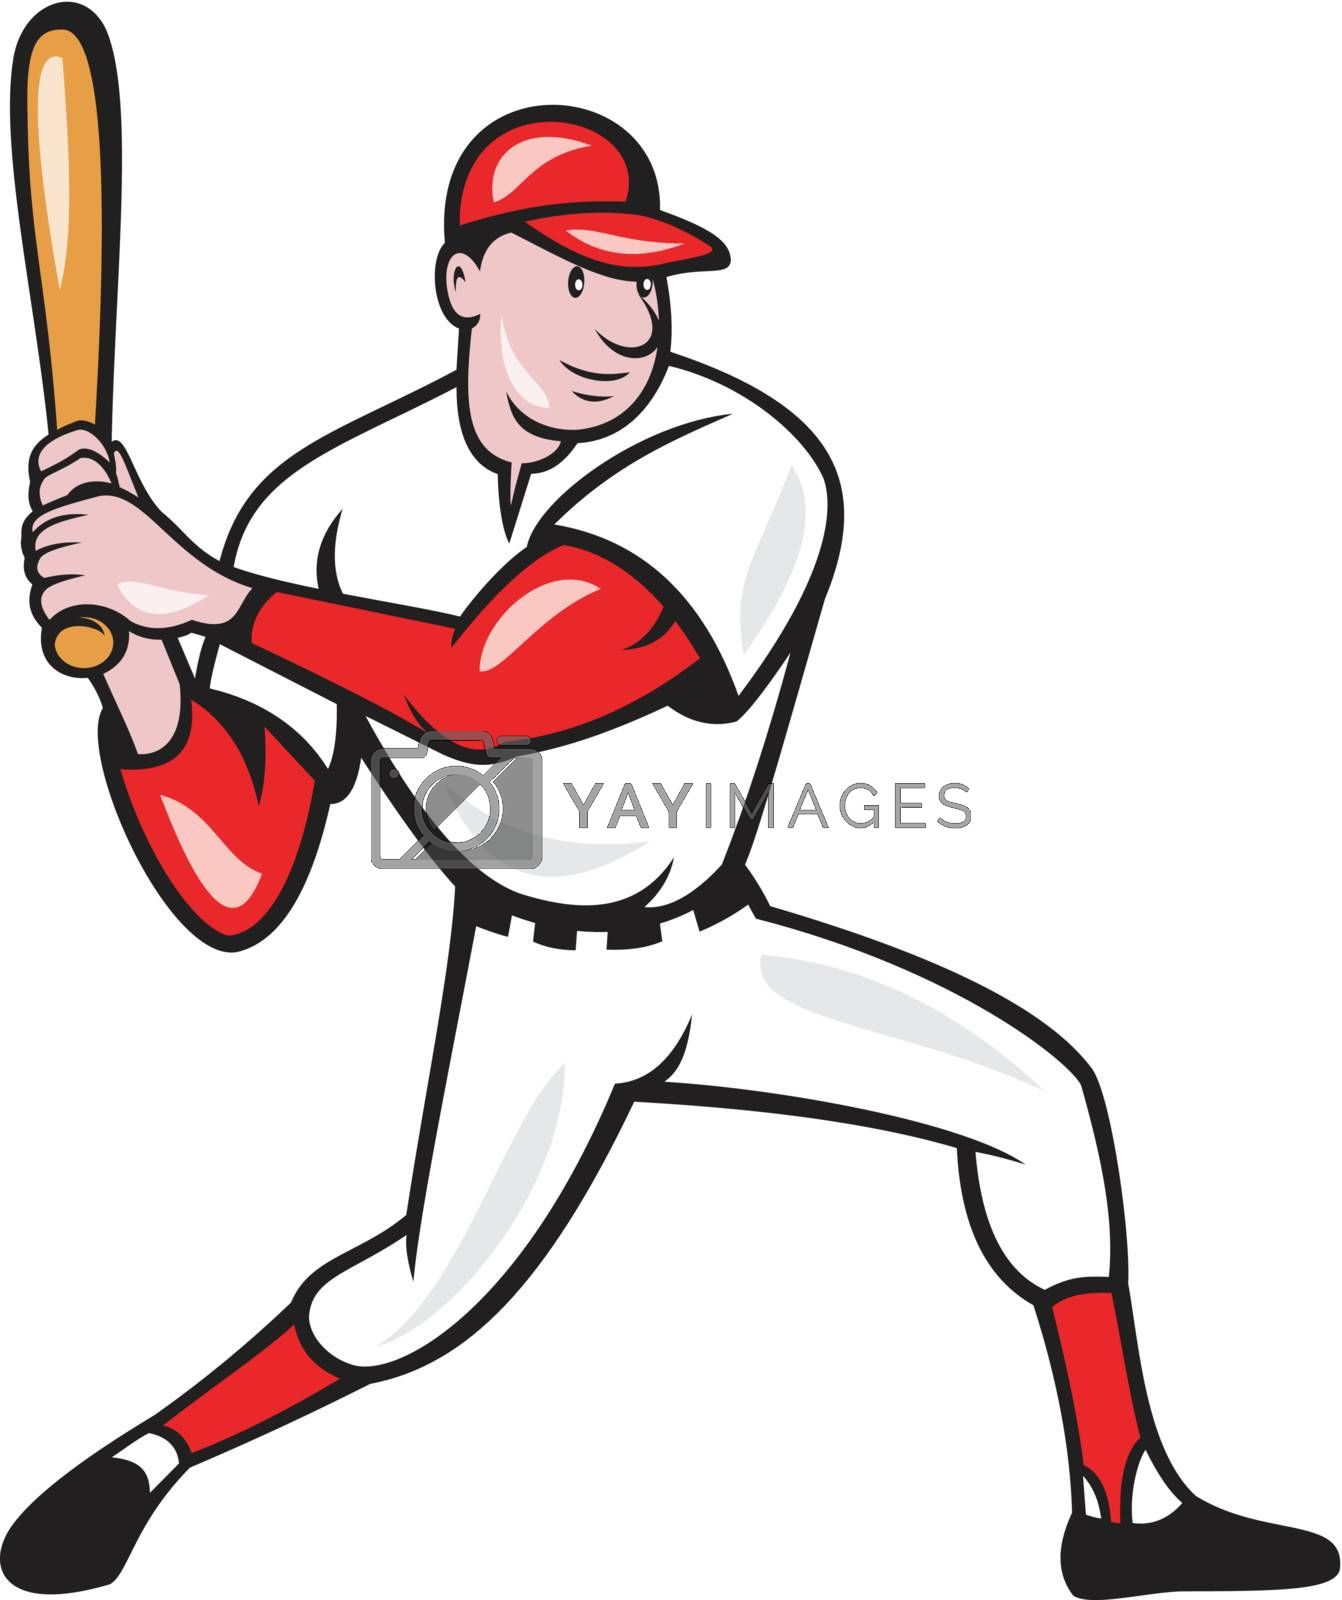 Illustration of a american baseball player batting cartoon style isolated on white background.